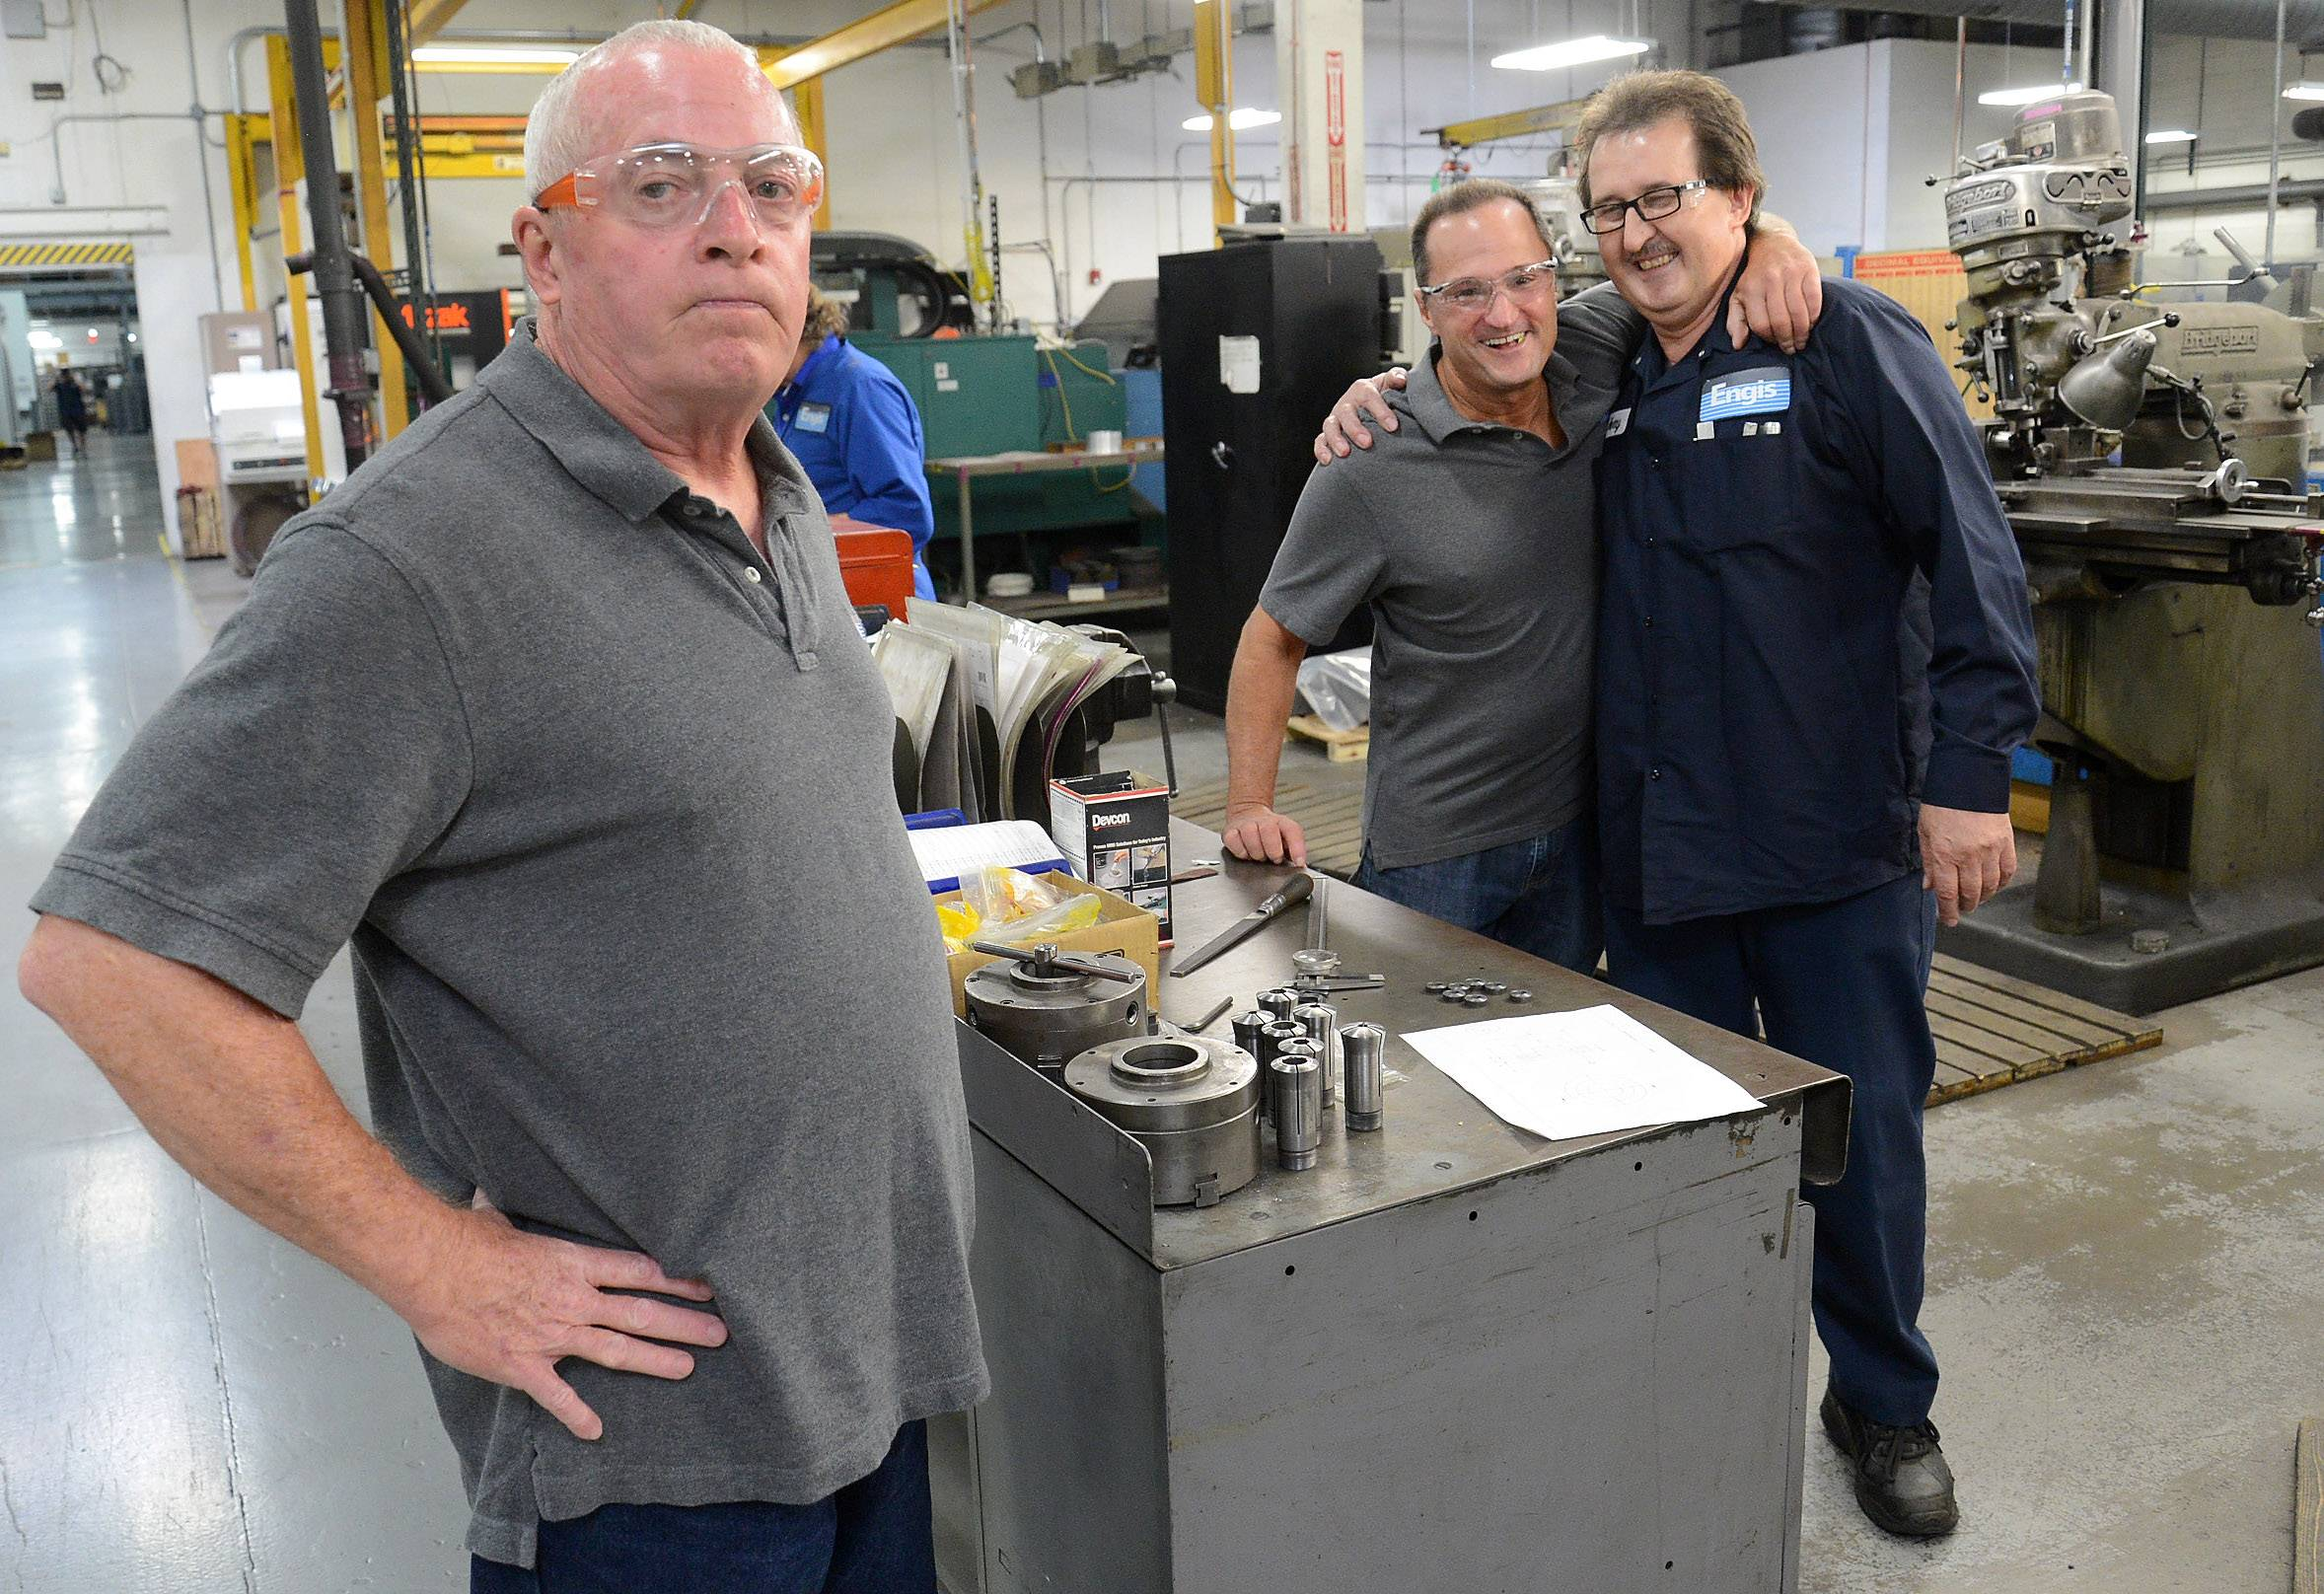 Engis Corp. employees Doug Jones, left, and Greg Nania, center, reunite with Henry Kosinski on his first day back at work Tuesday in Wheeling.